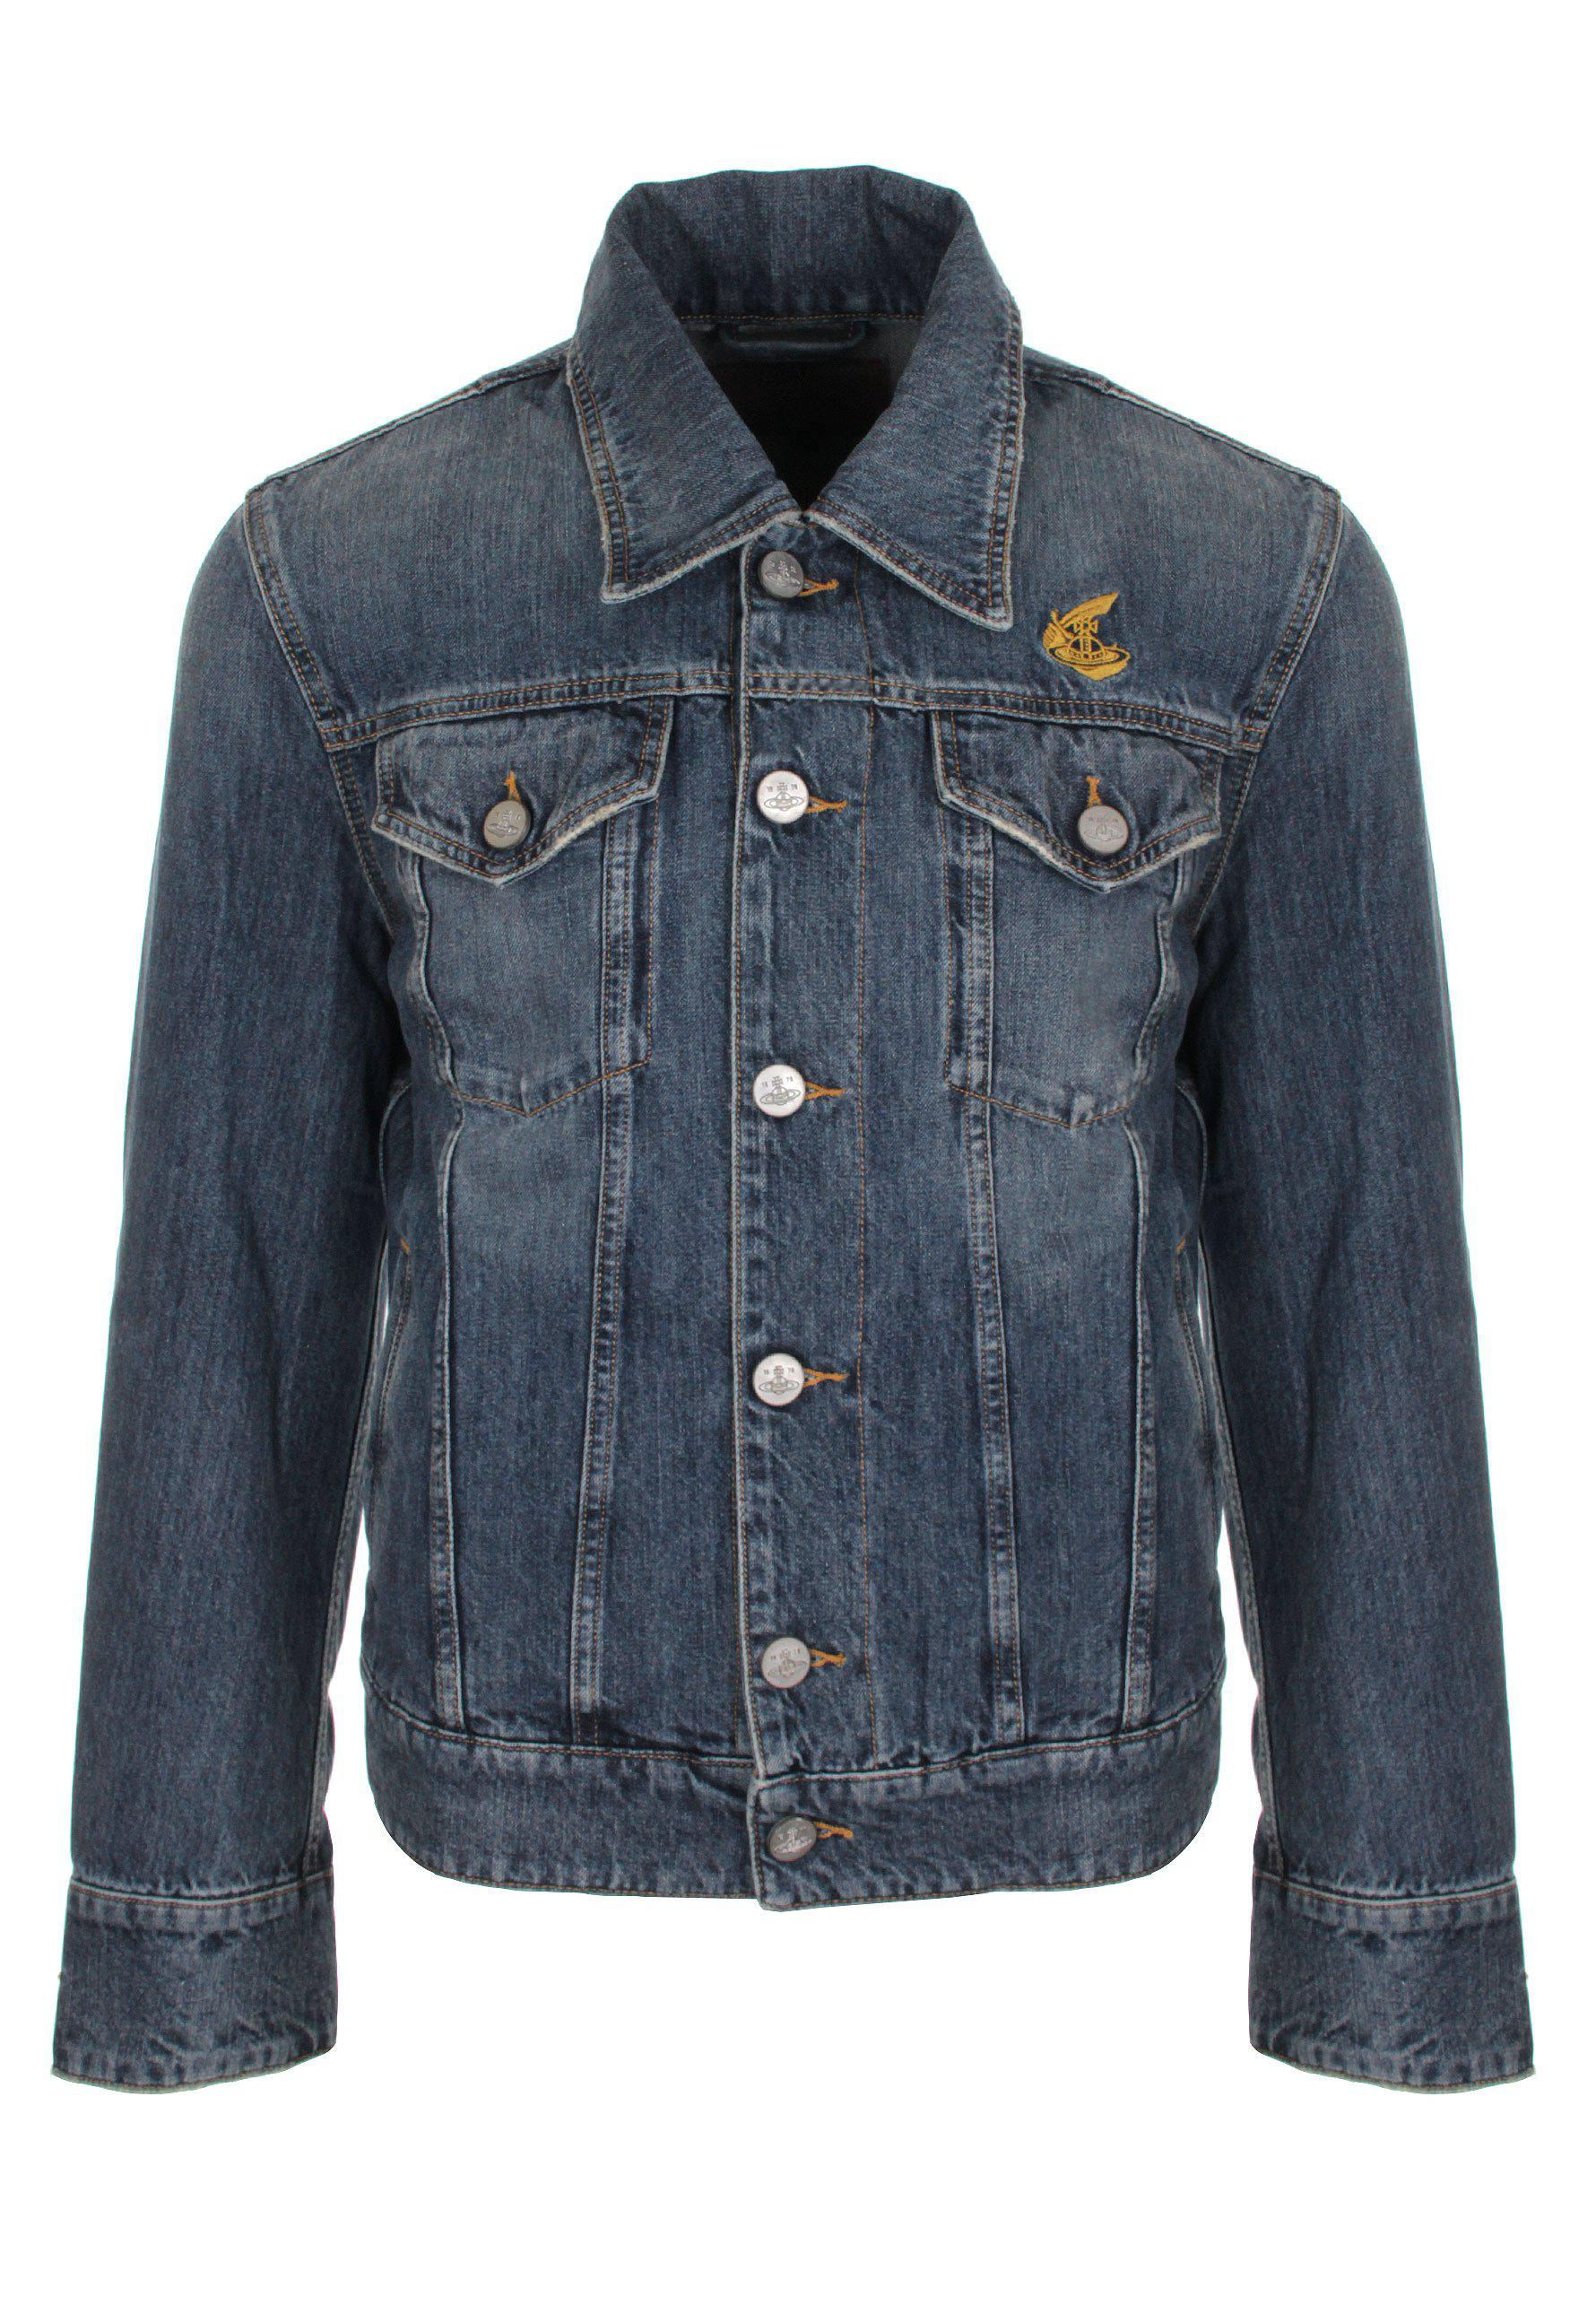 Lyst - Vivienne Westwood Anglomania New D. Ace Jacket Blue Denim in ... 57a741096